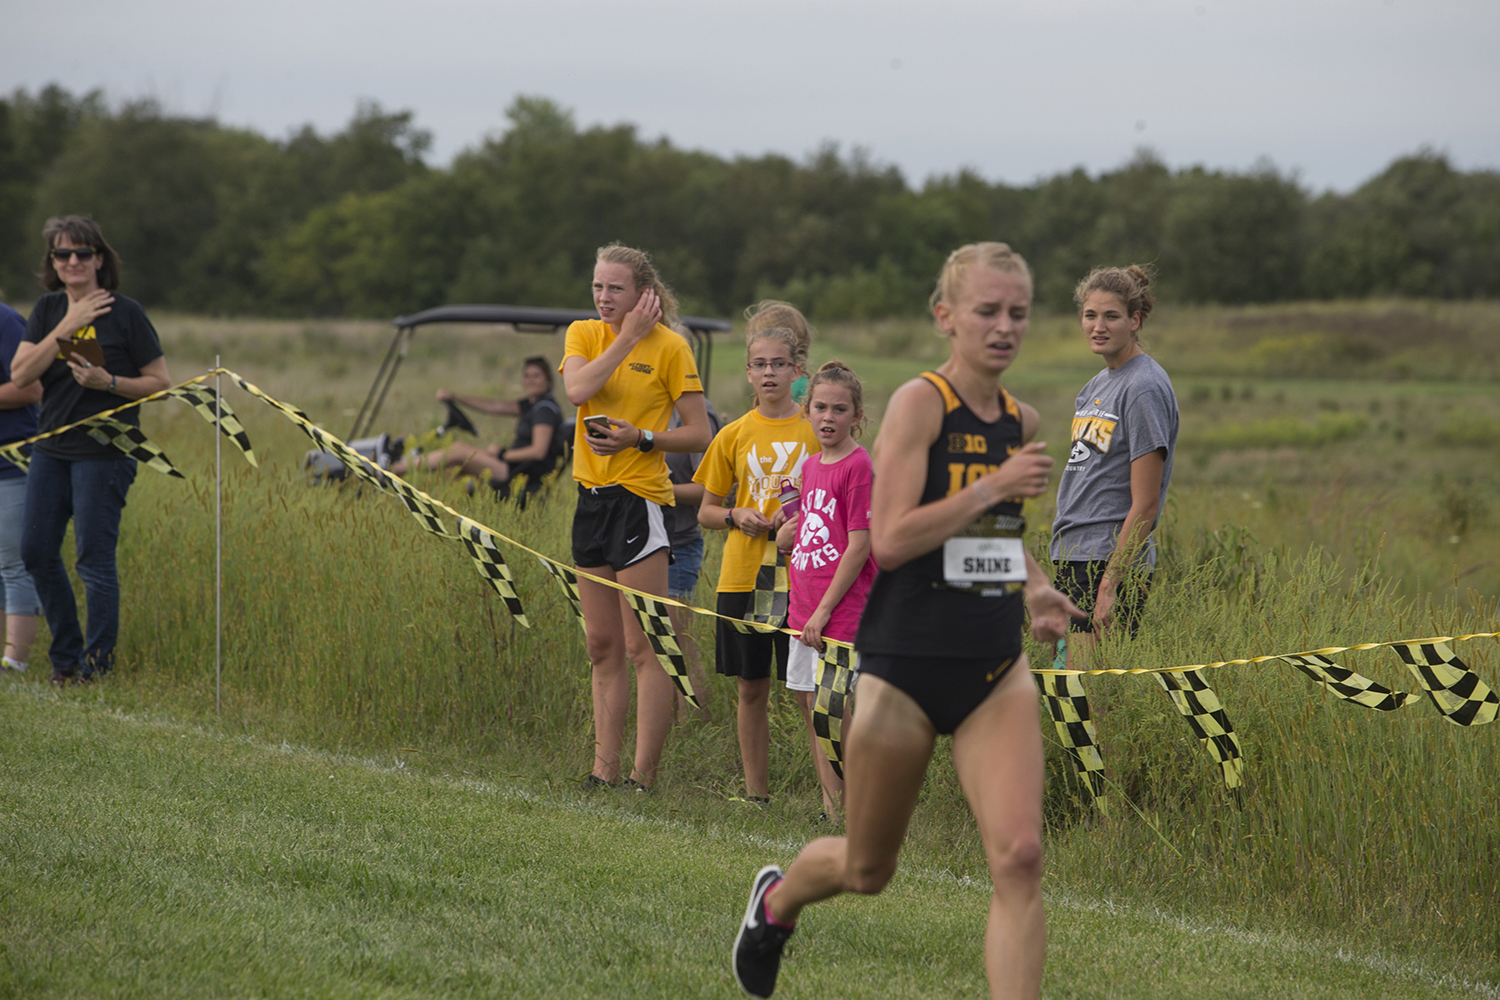 Bystanders look on as Senior Andrea Shine runs through the finish line during the Hawkeye Invitational at Ashton Cross Country course on Friday, August 31, 2018. Iowa State won the meet with a score of 24, while the Hawkeyes finished second with a score of 56. Shine placed first in the Women's 4K with a time of 14:07.5.